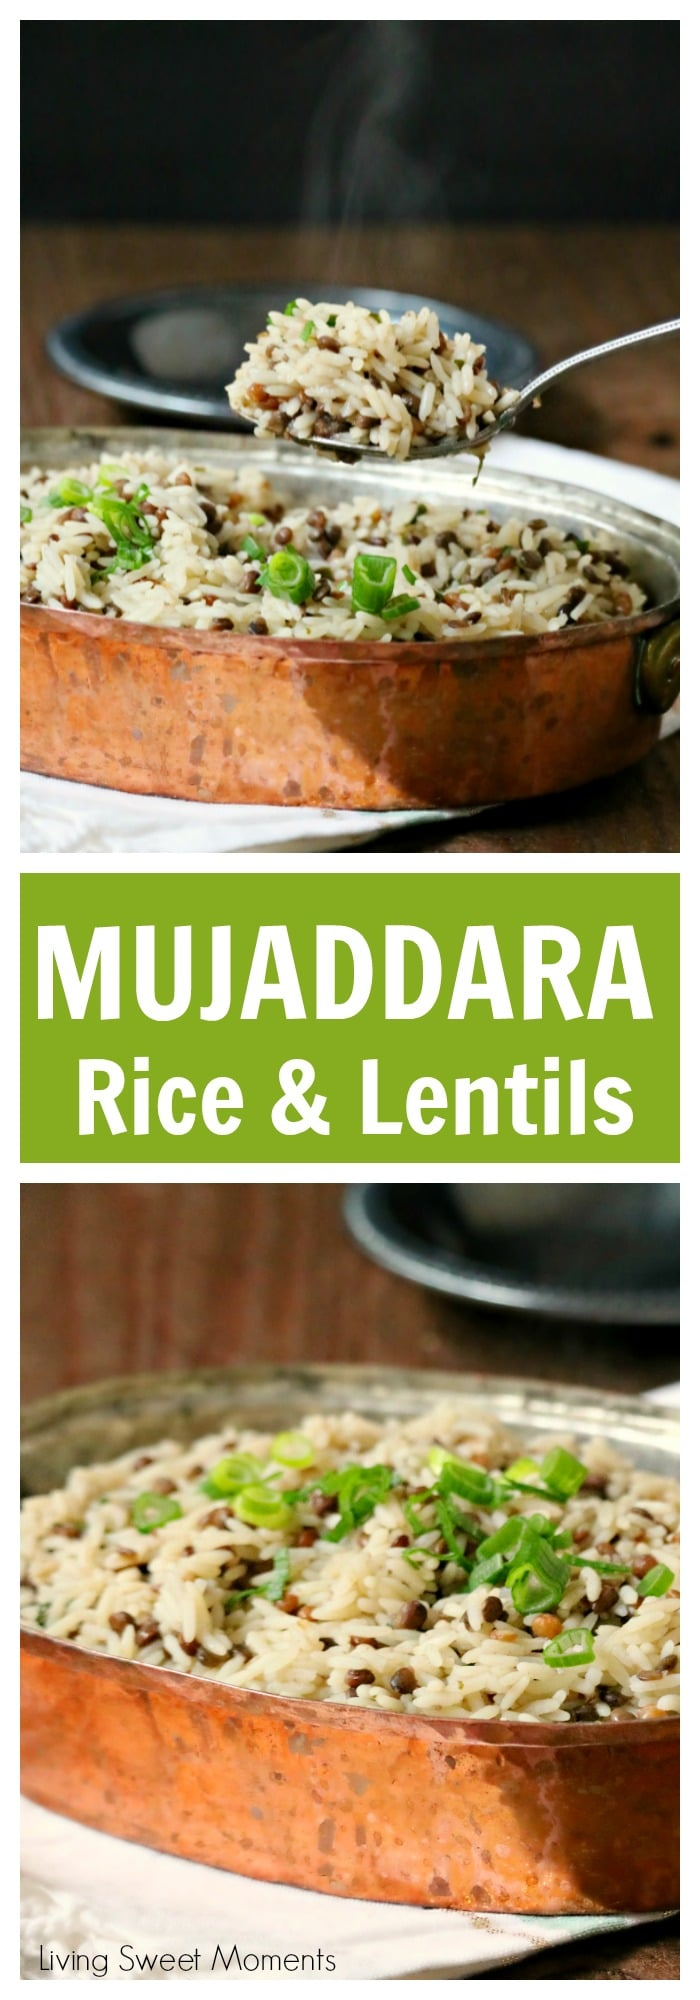 This delicious Mujaddara recipe is an entree made with rice, lentils and rich spices for an easy middle eastern dish that will wow your family for dinner.